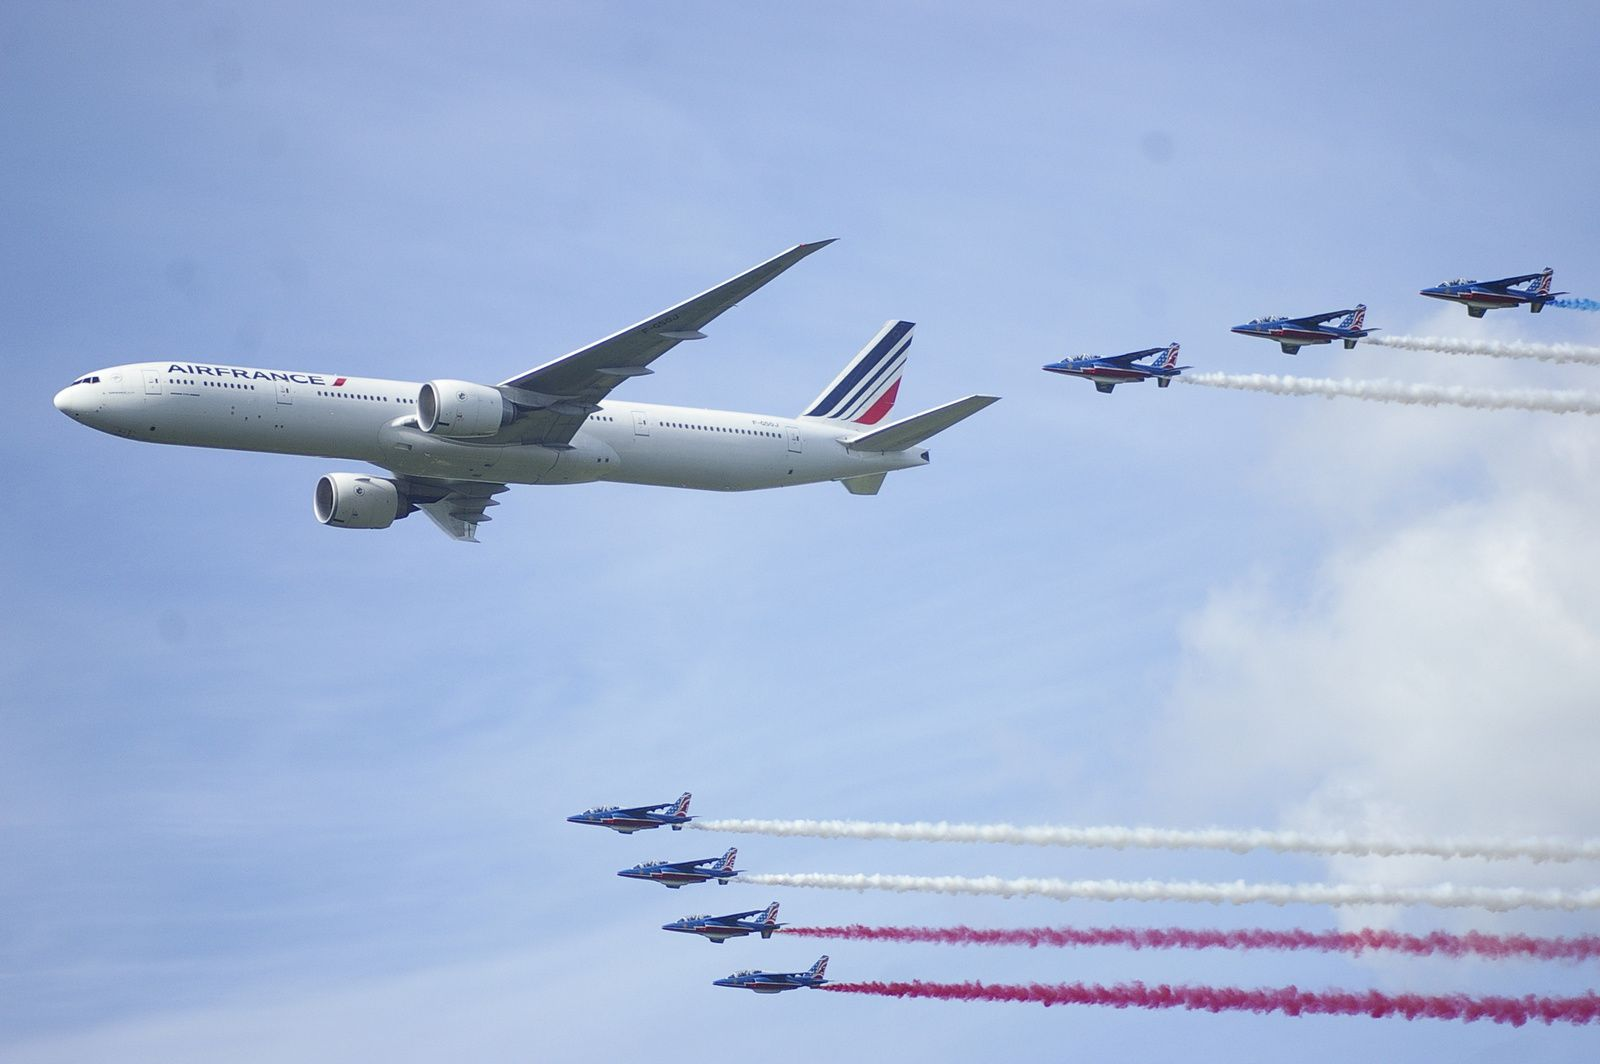 La patrouille de France escortant un Boeing 777/300